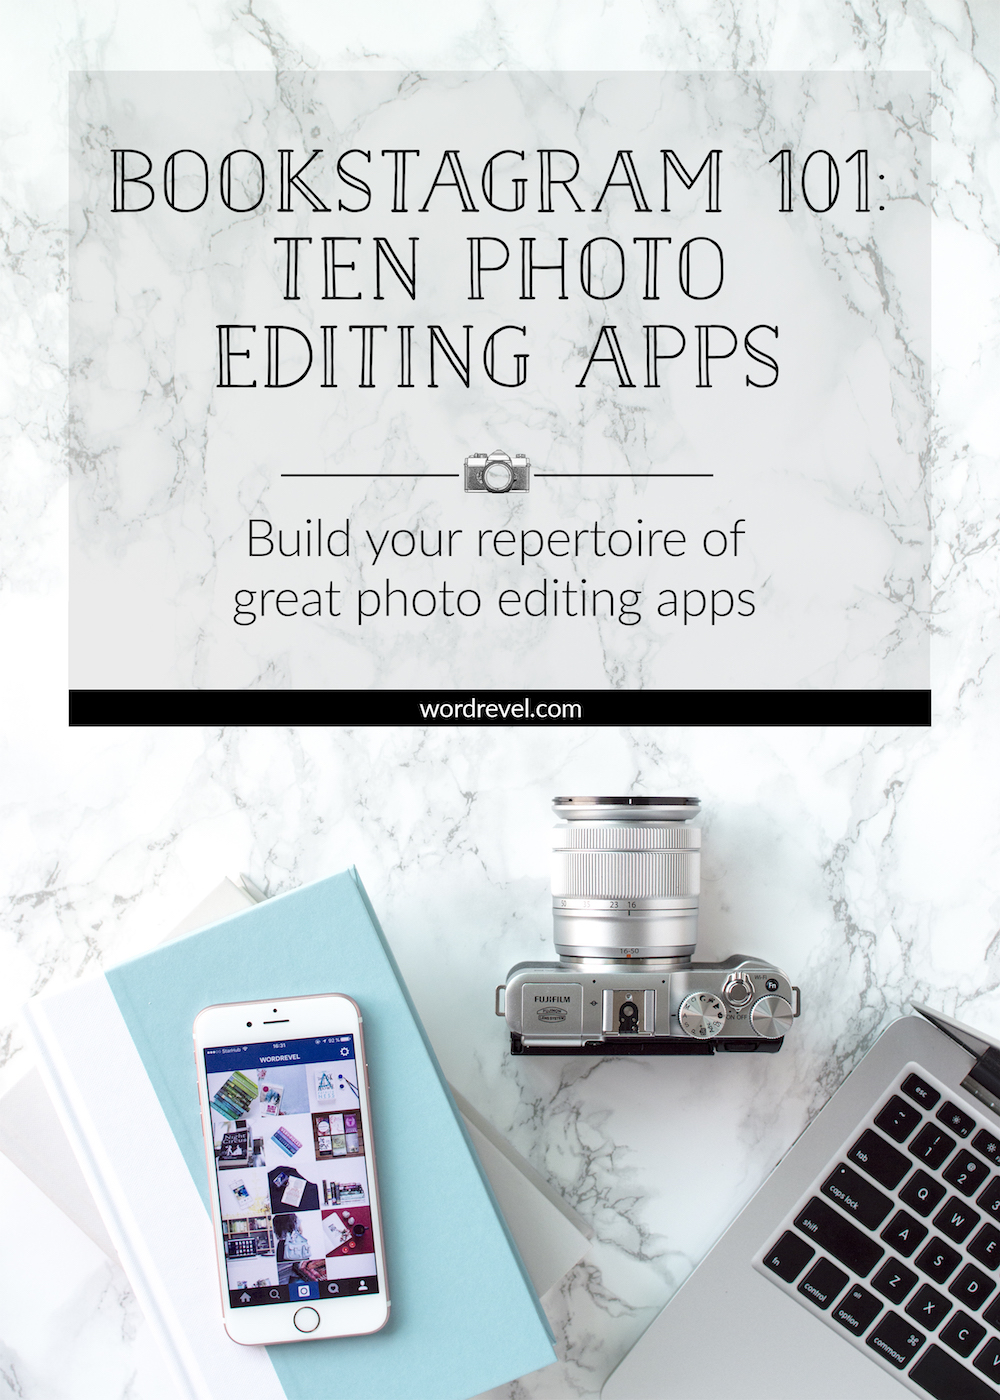 Bookstagram 101: Ten Photo Editing Apps